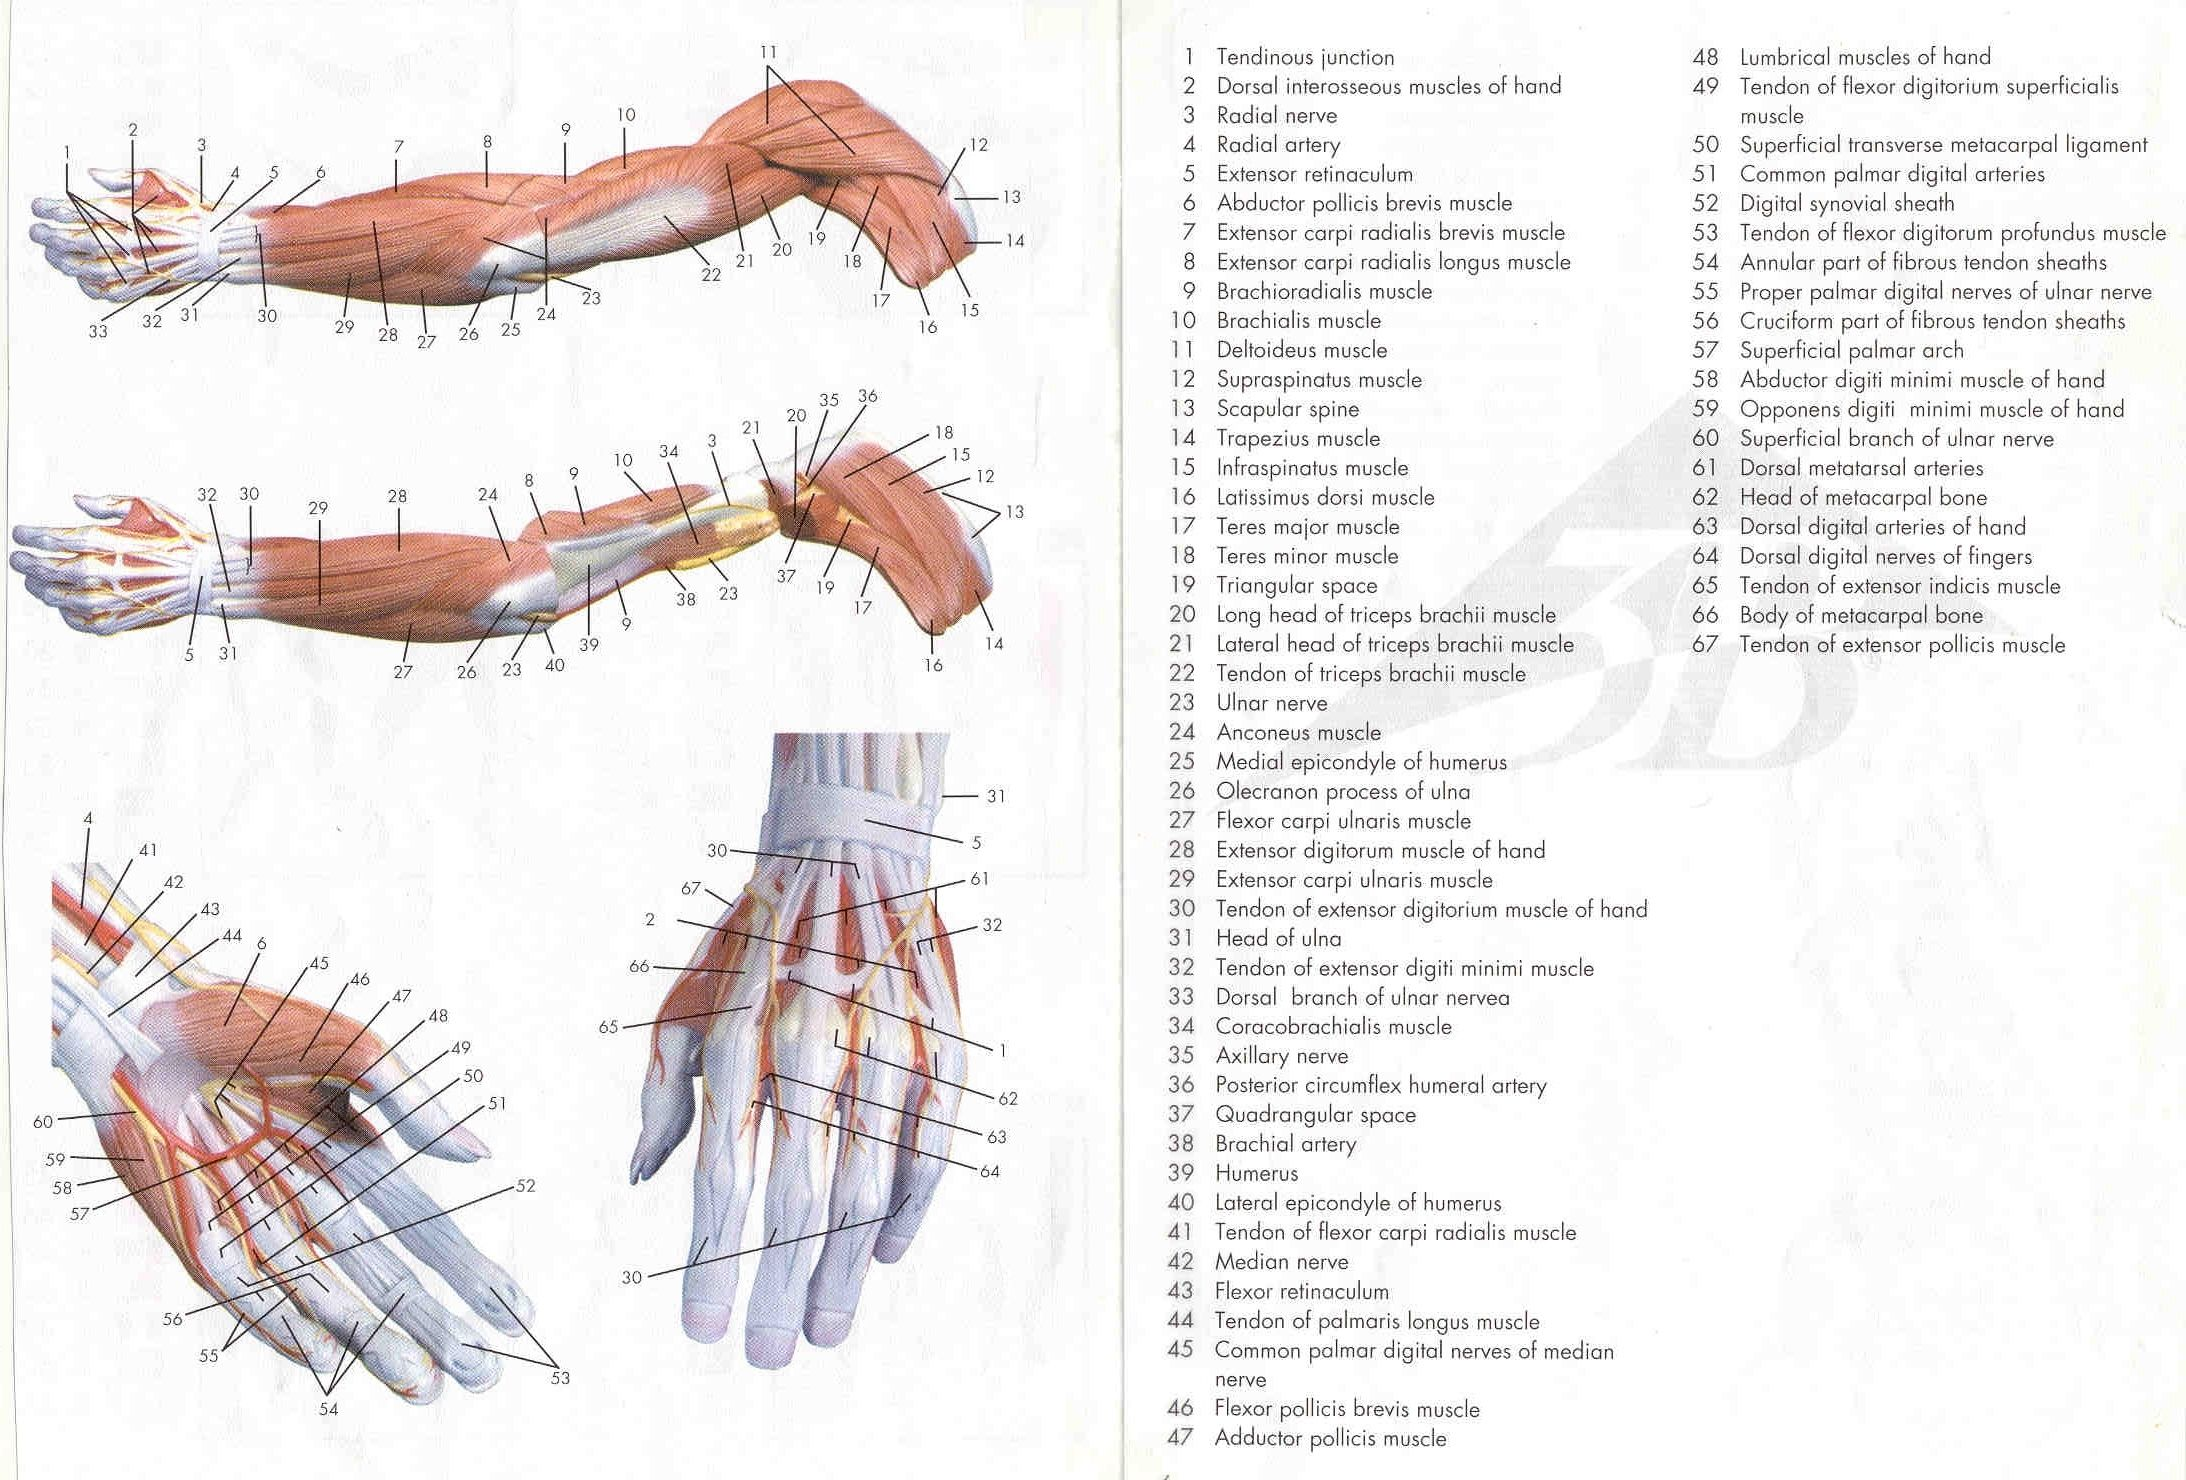 Human upper limb and hand muscle tendon anatomy in detail - Anatomy ...